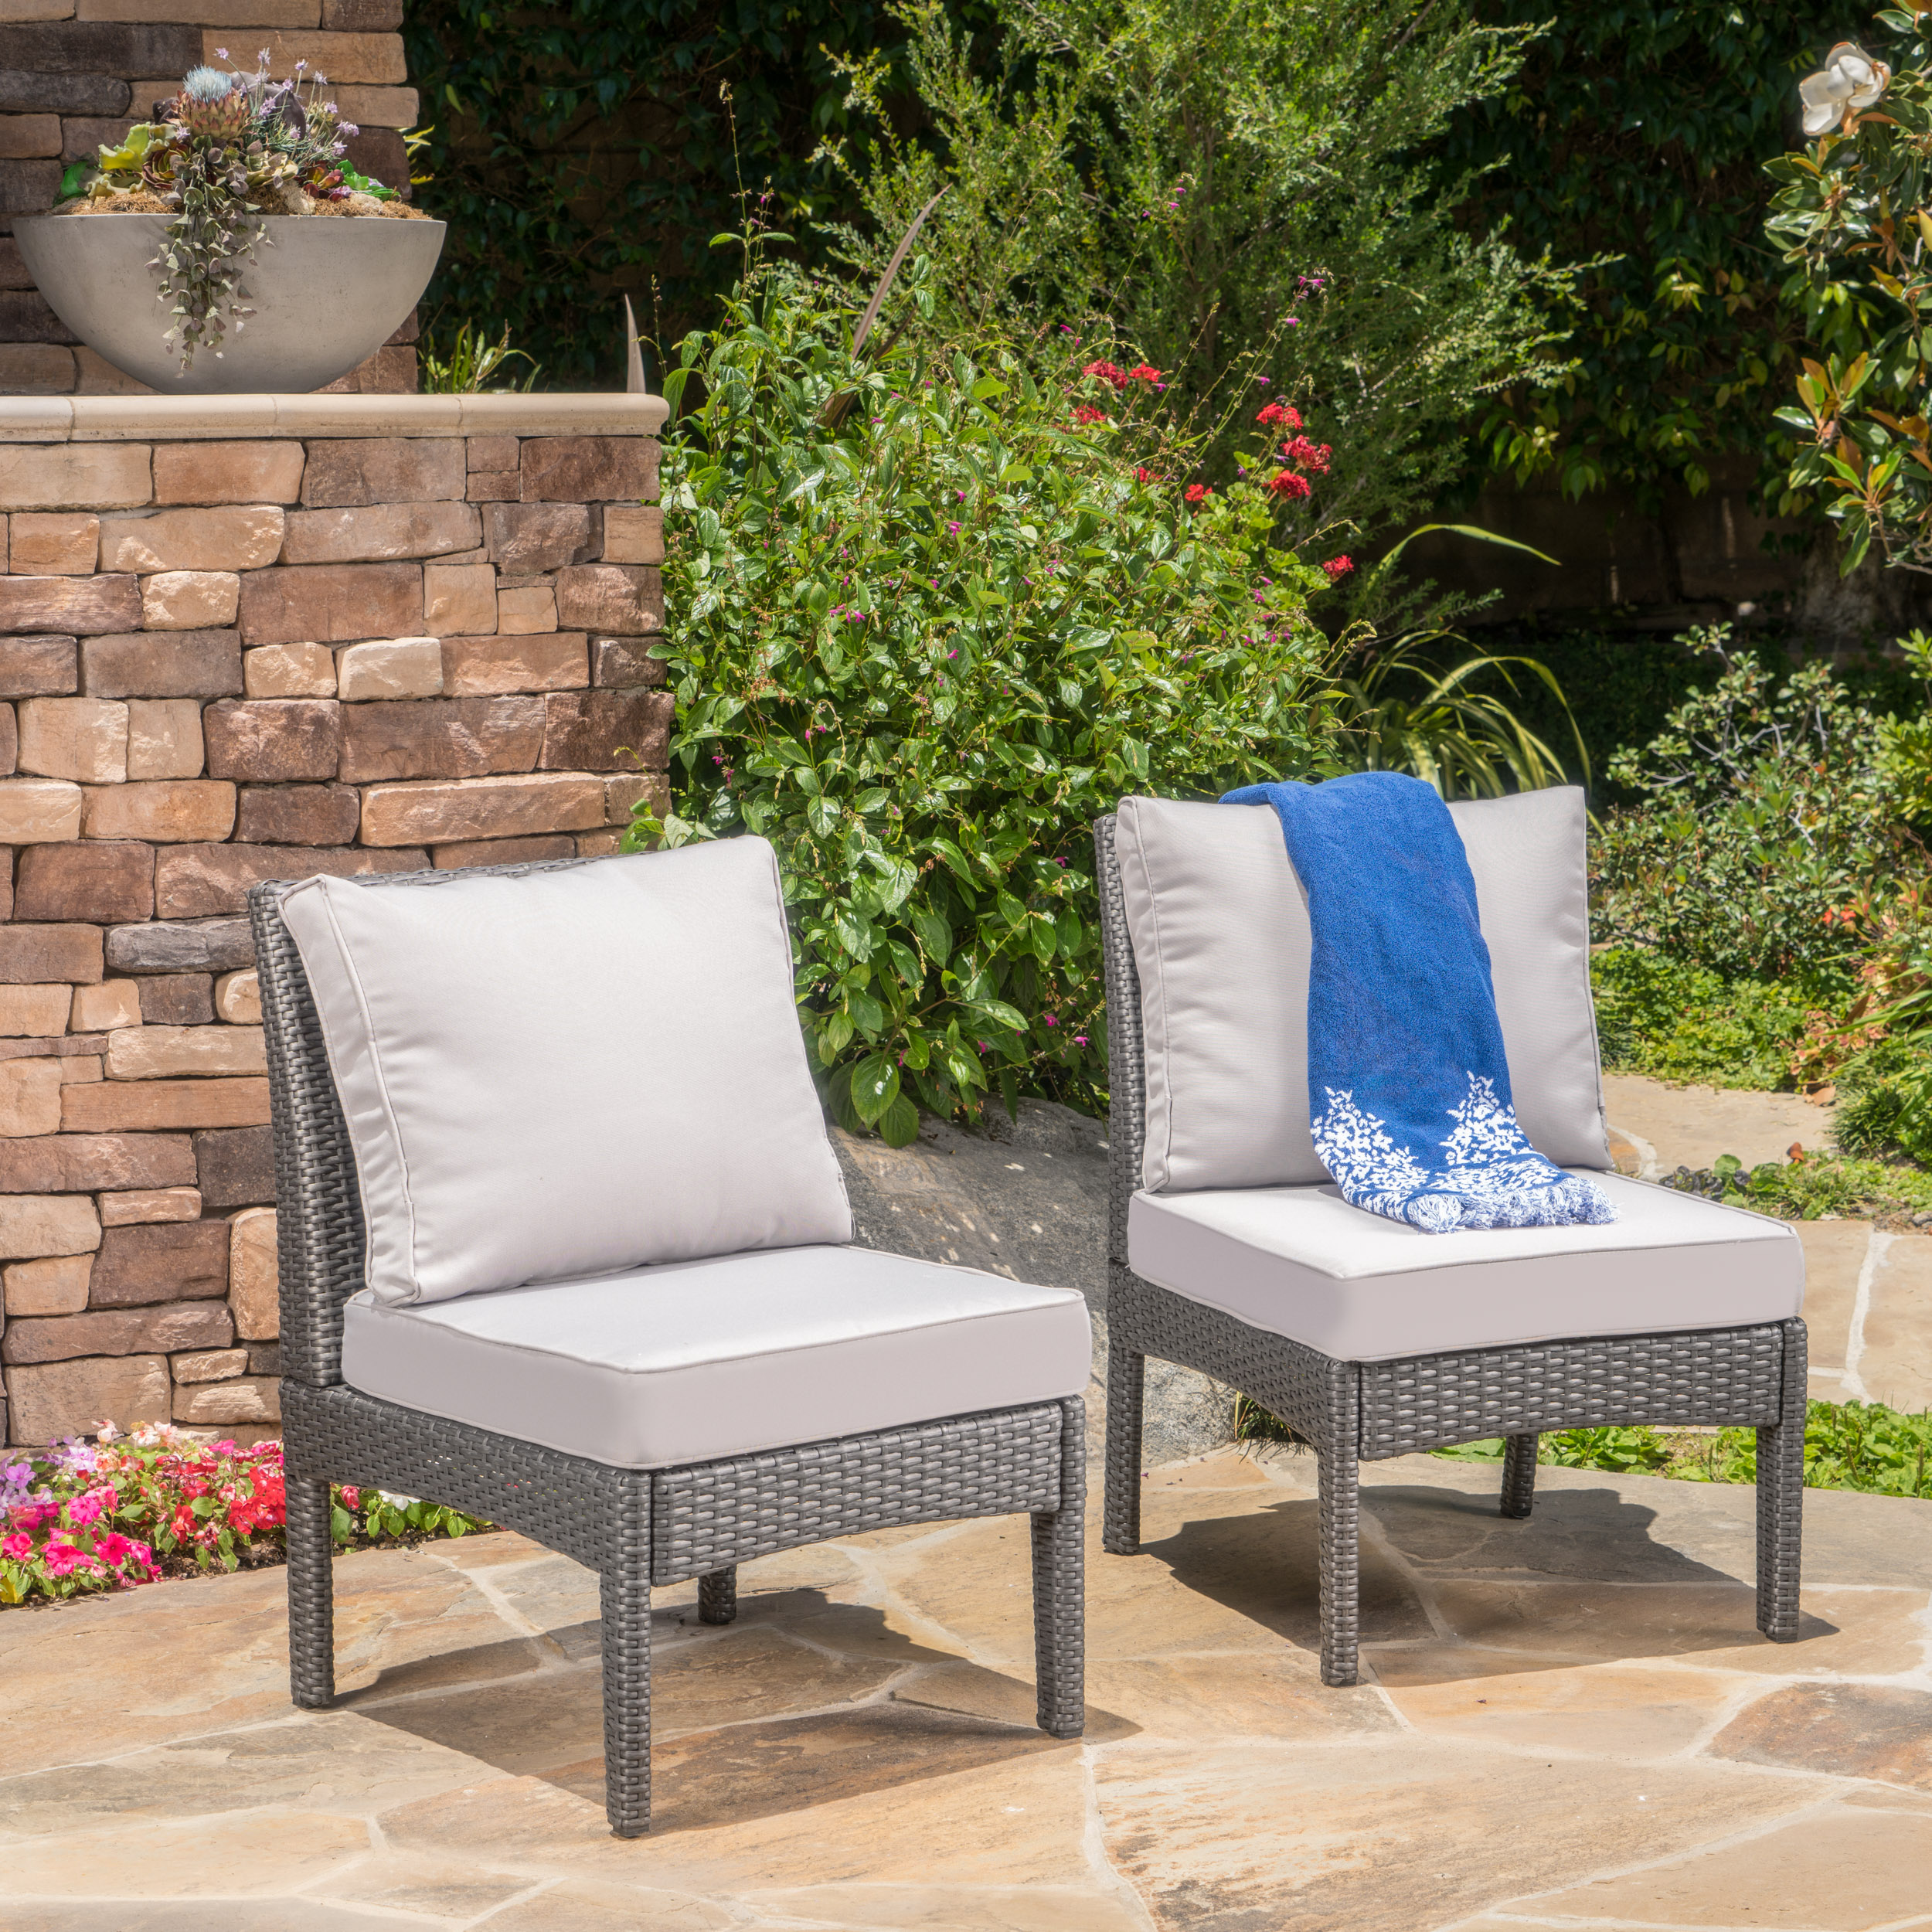 Kingsfield Outdoor Wicker Armless Accent Chair with Cushions, Set of 2, Grey, Silver